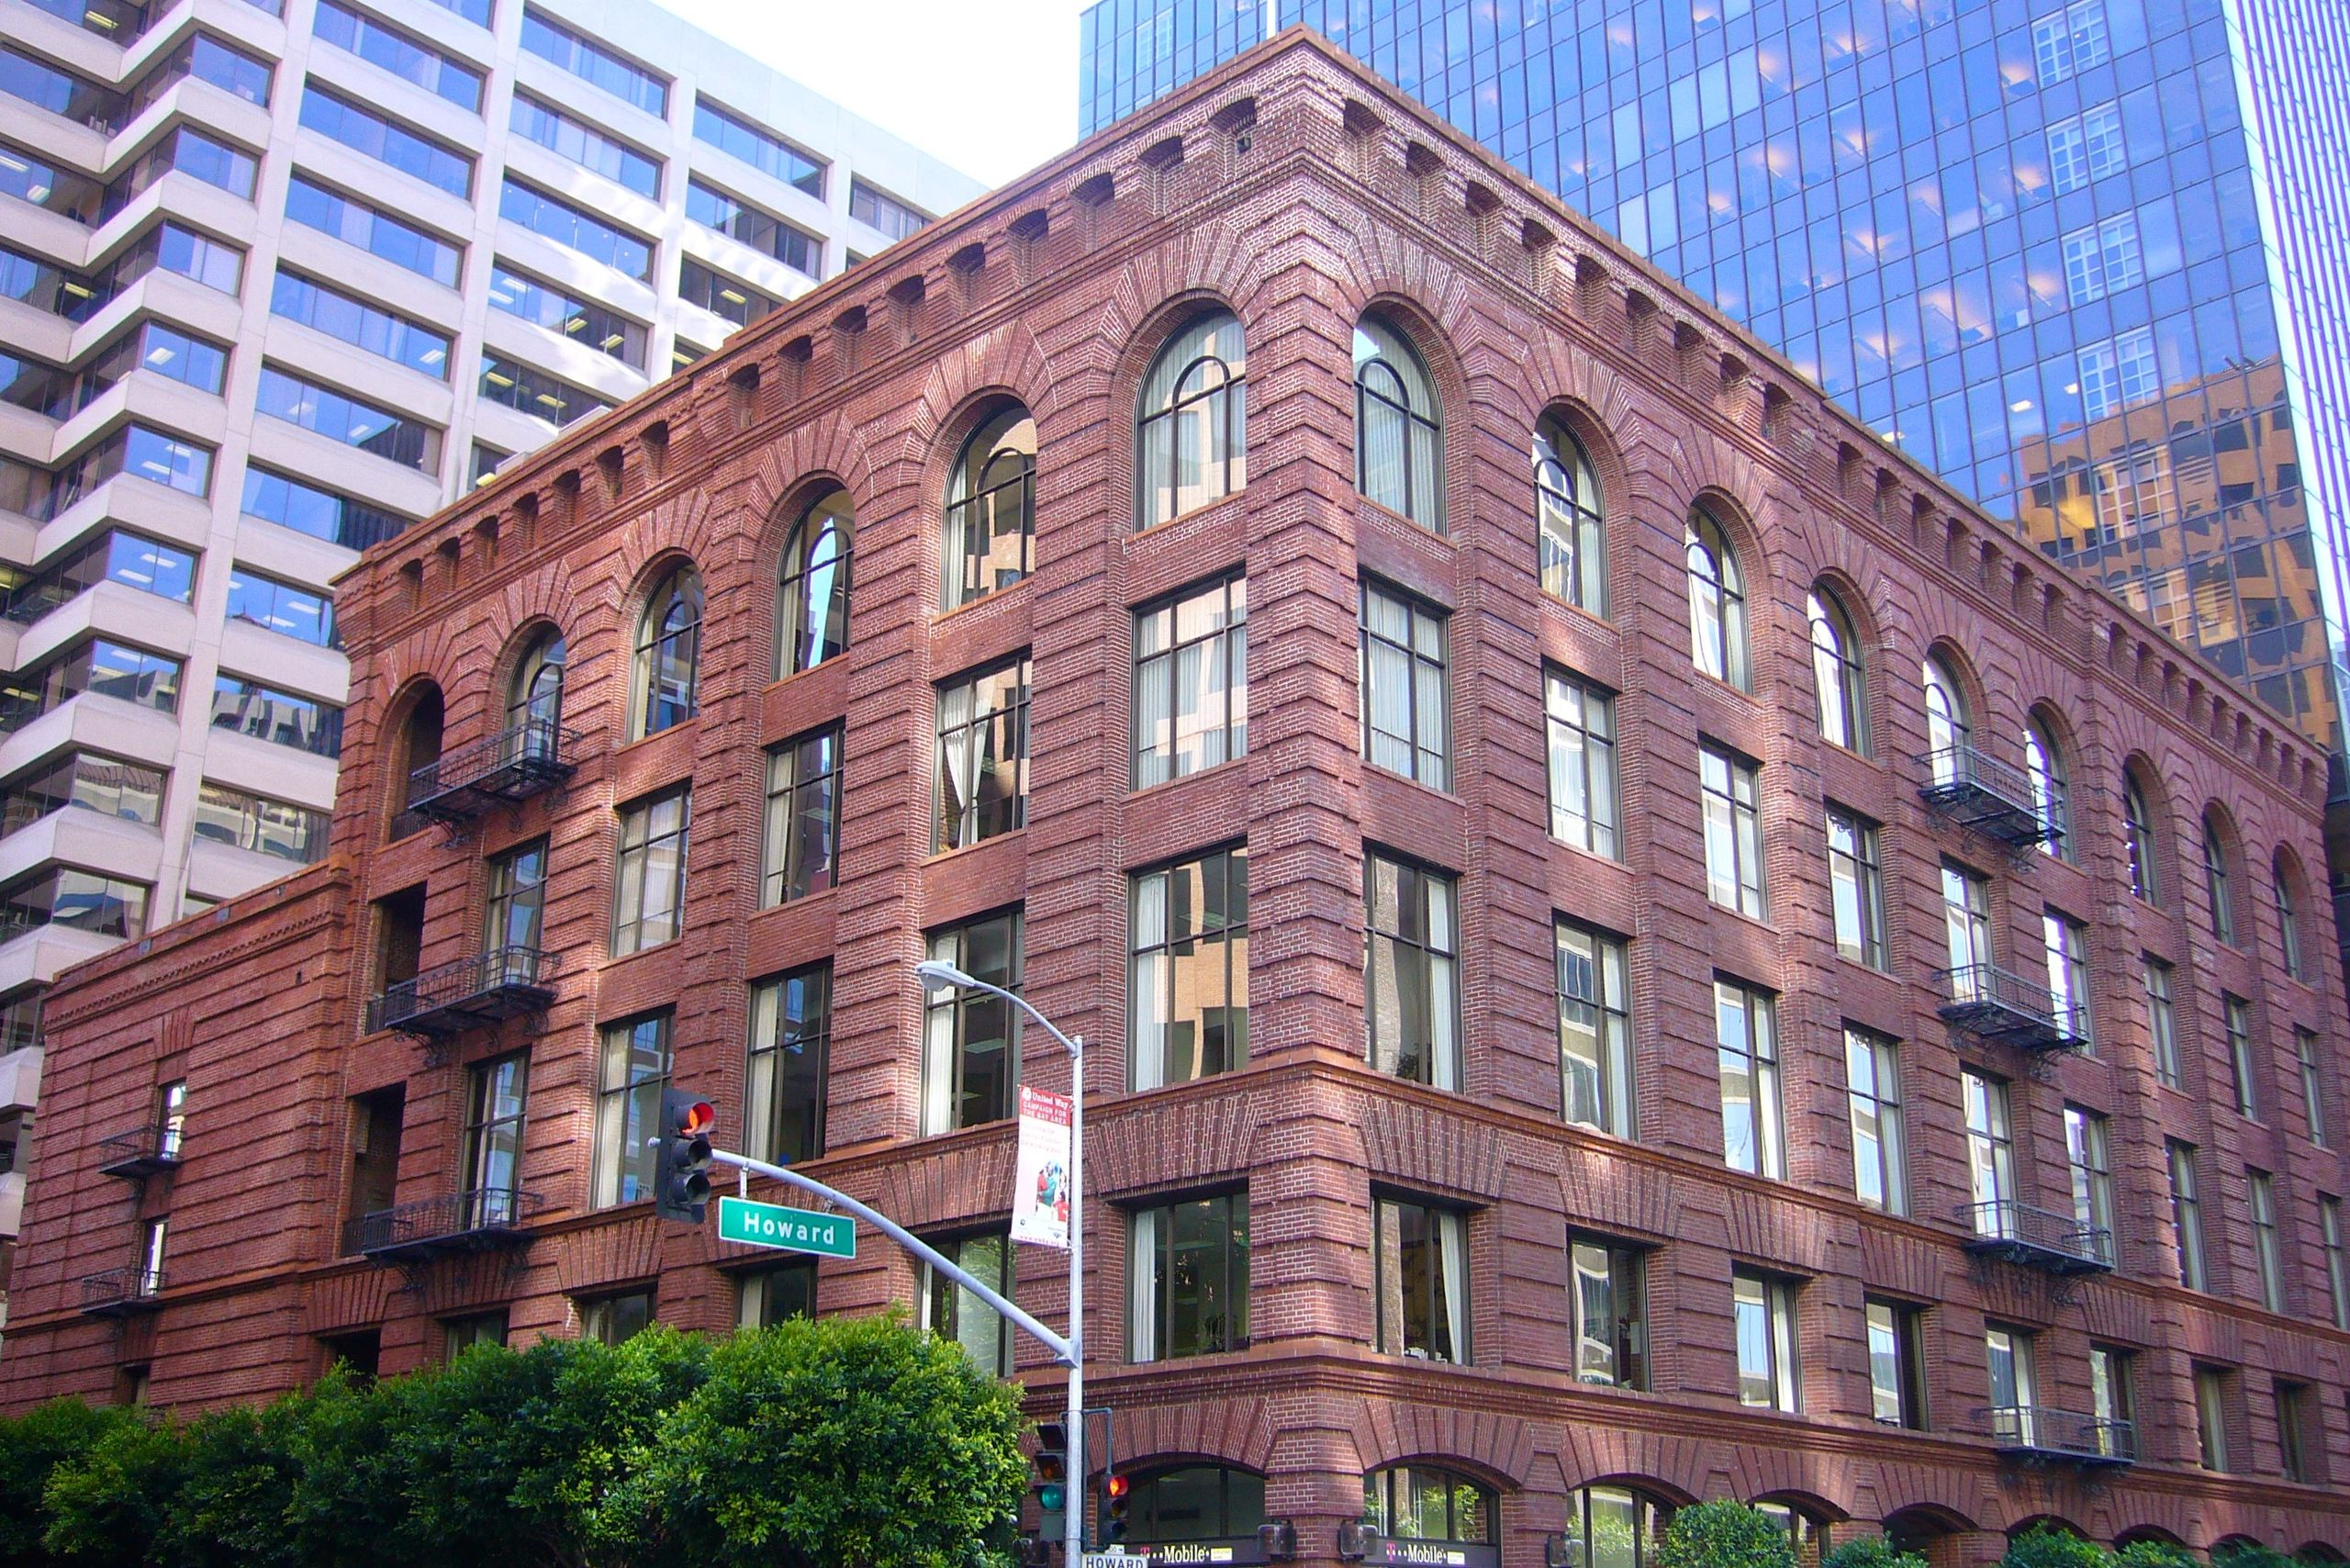 USF Data Institute in downtown SF, Image Credit: <a href='https://commons.wikimedia.org/w/index.php?curid=3460420'>By Eric in SF - Own work, CC BY-SA 4.0</a>